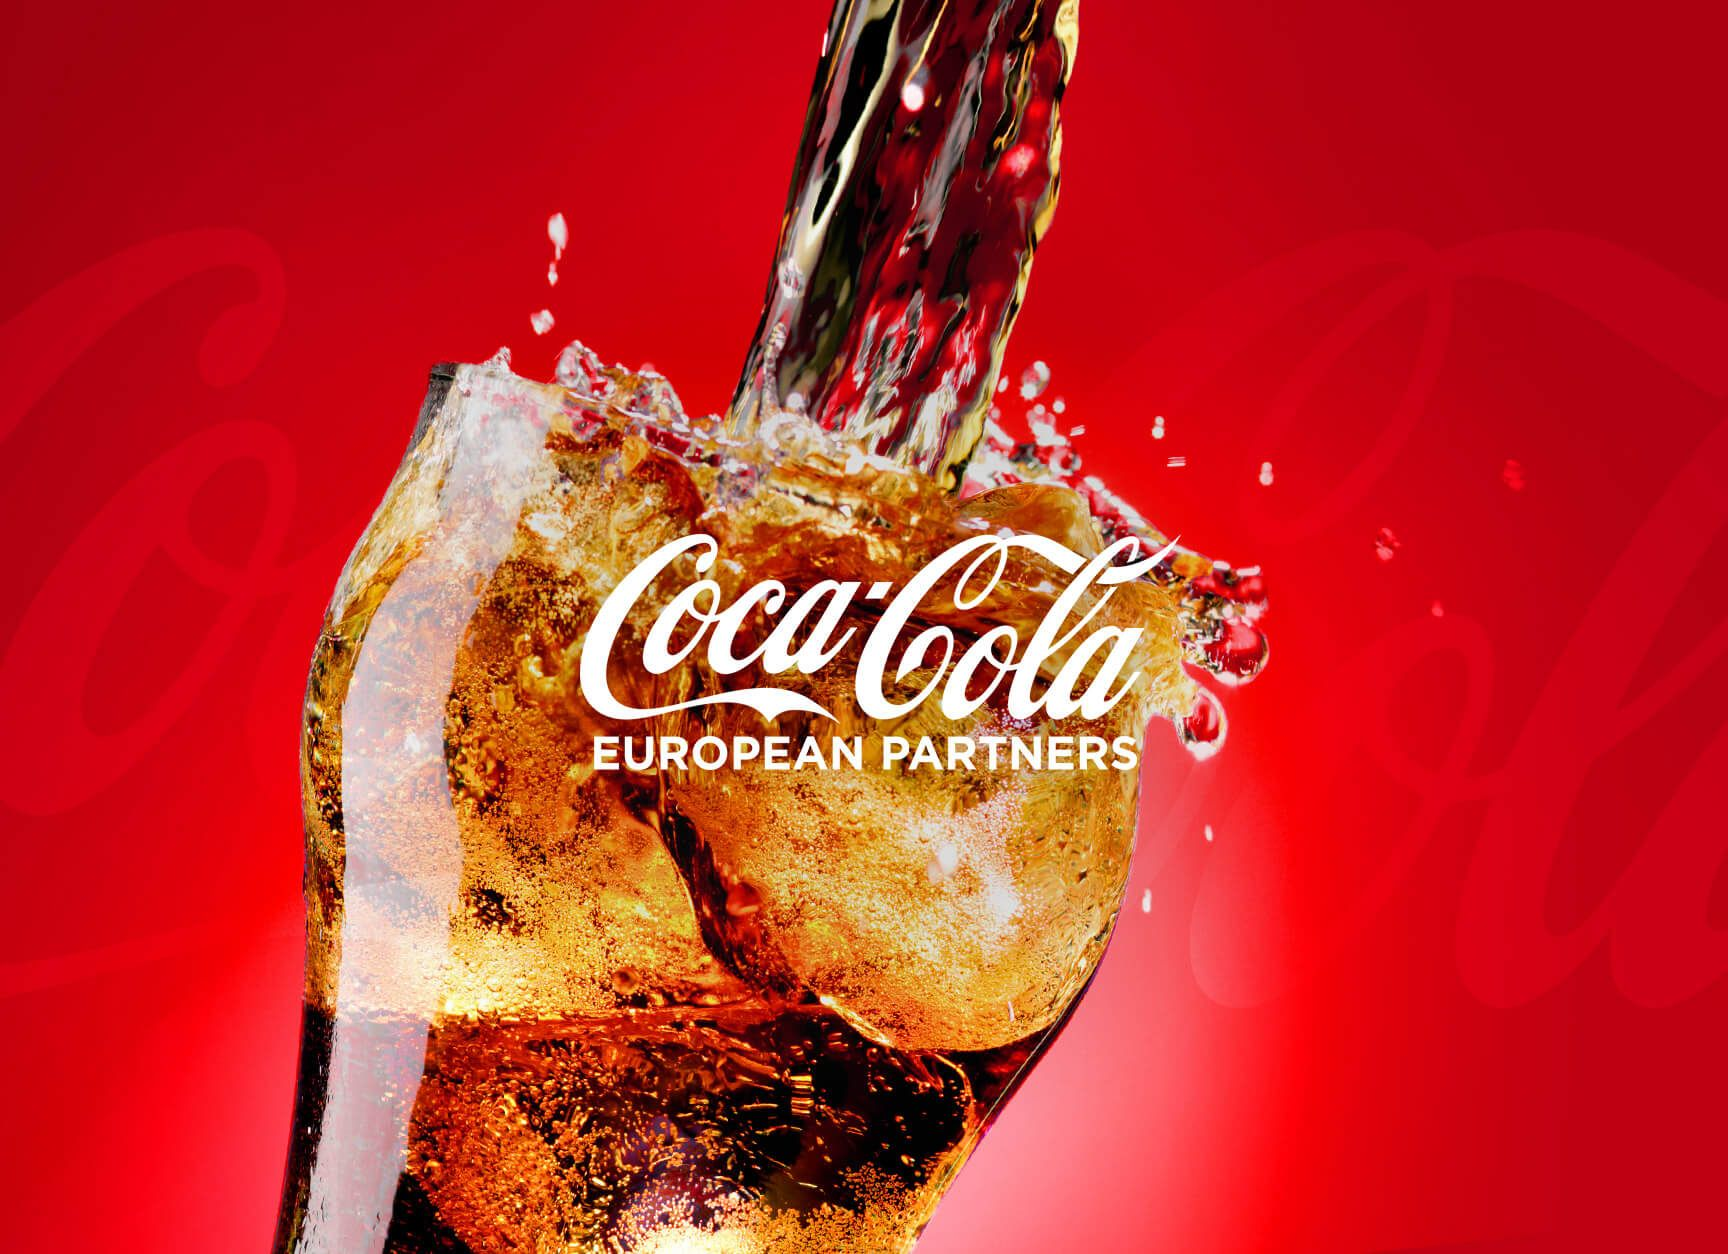 Product strategy and transformation at Coca Cola European Partners